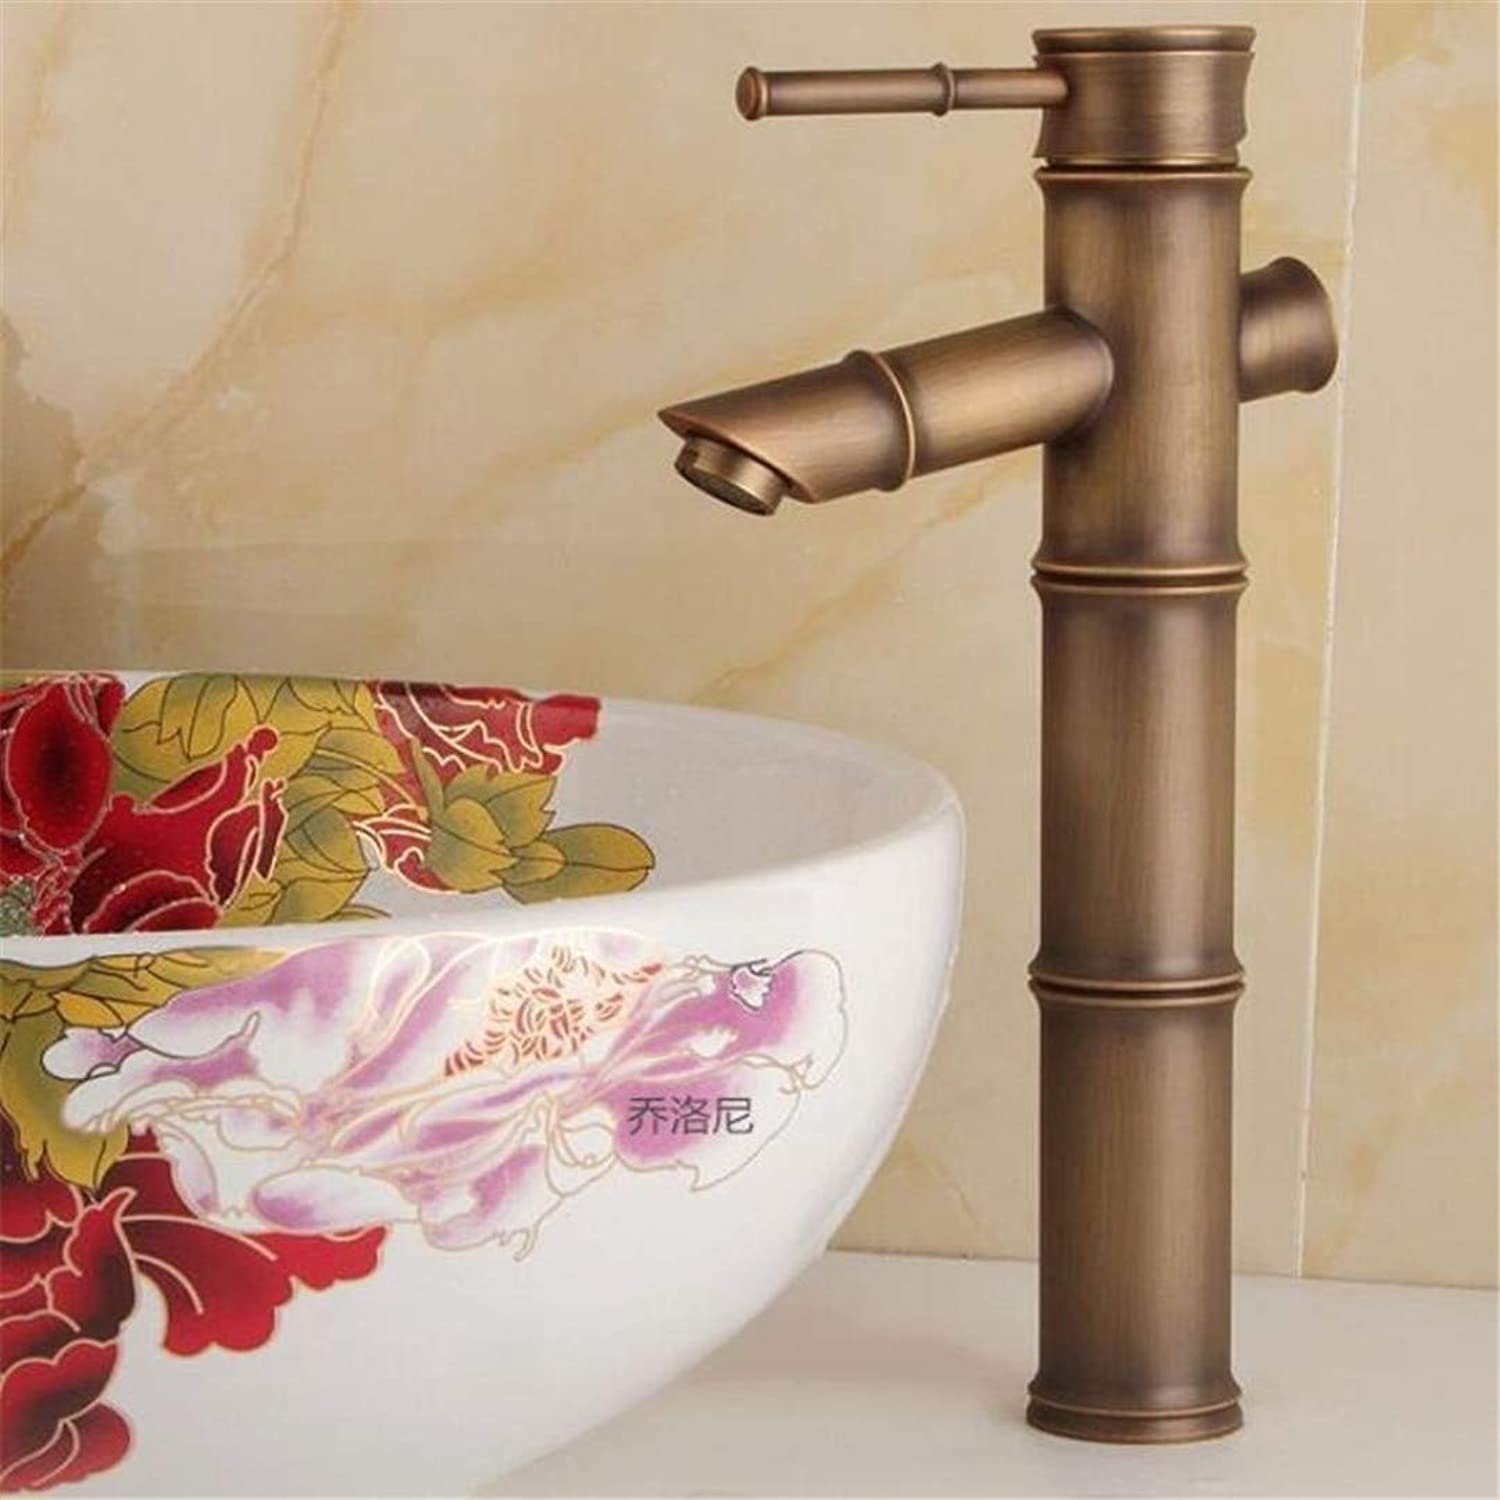 Basin Sink Mixer Faucet?Hot and Cold Water Basin Basin Faucet Basin Bathroom Washbasin Faucet Antique Above Counter Basin Lift Faucet